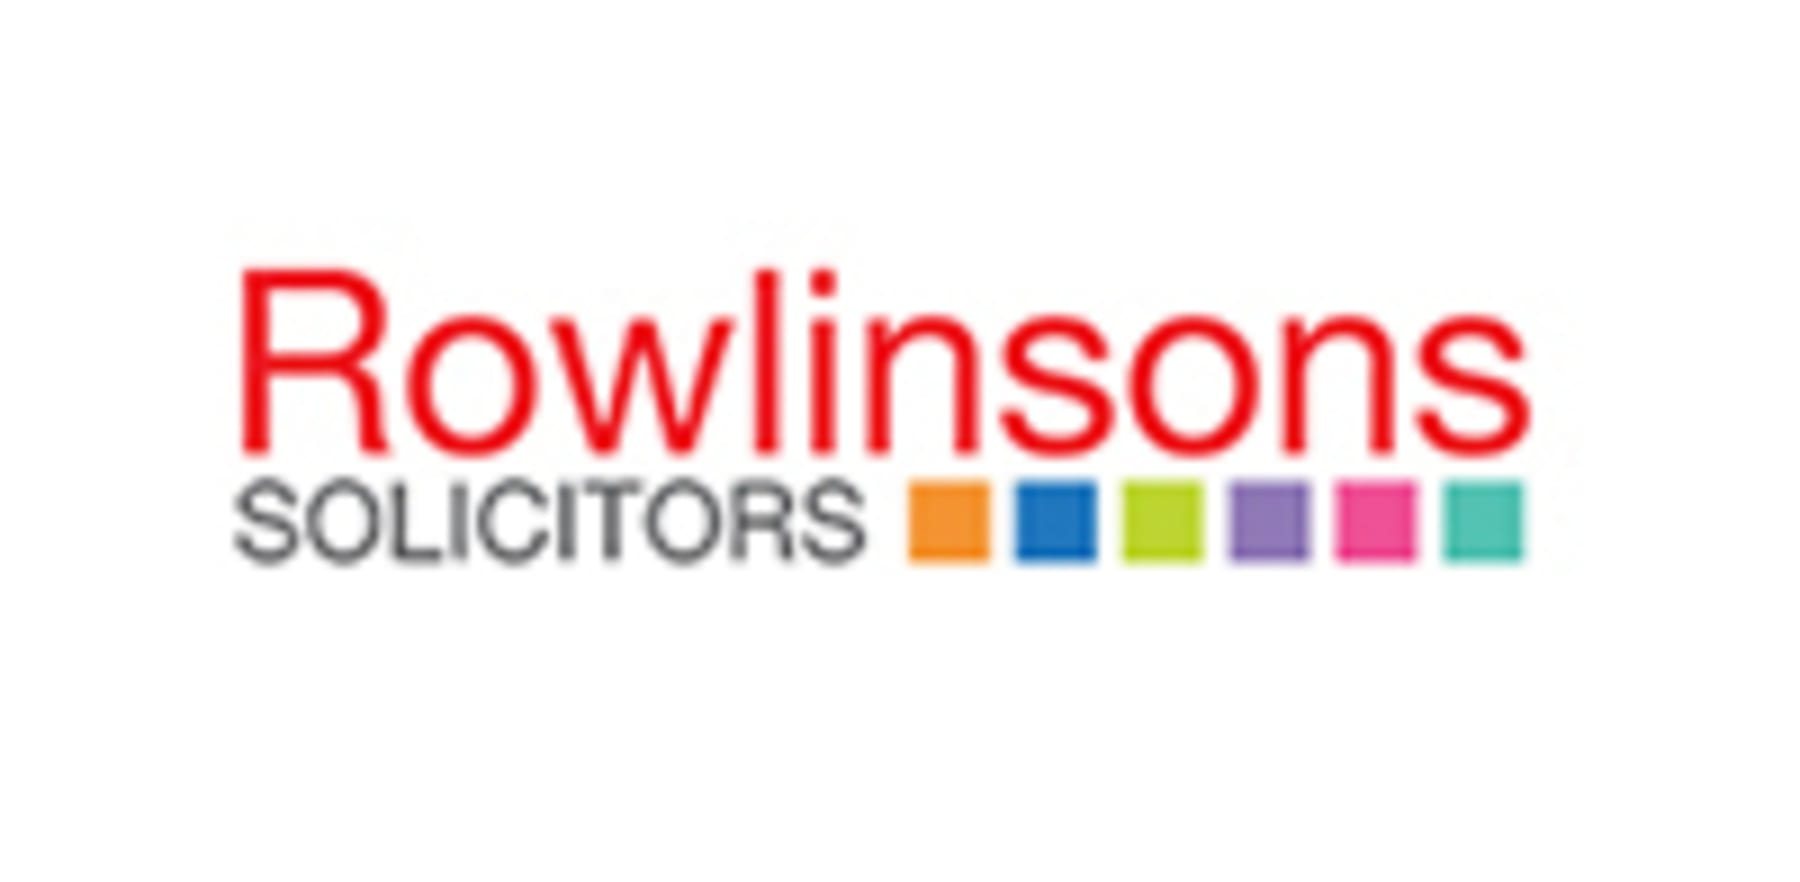 Rowlinsons Solicitors